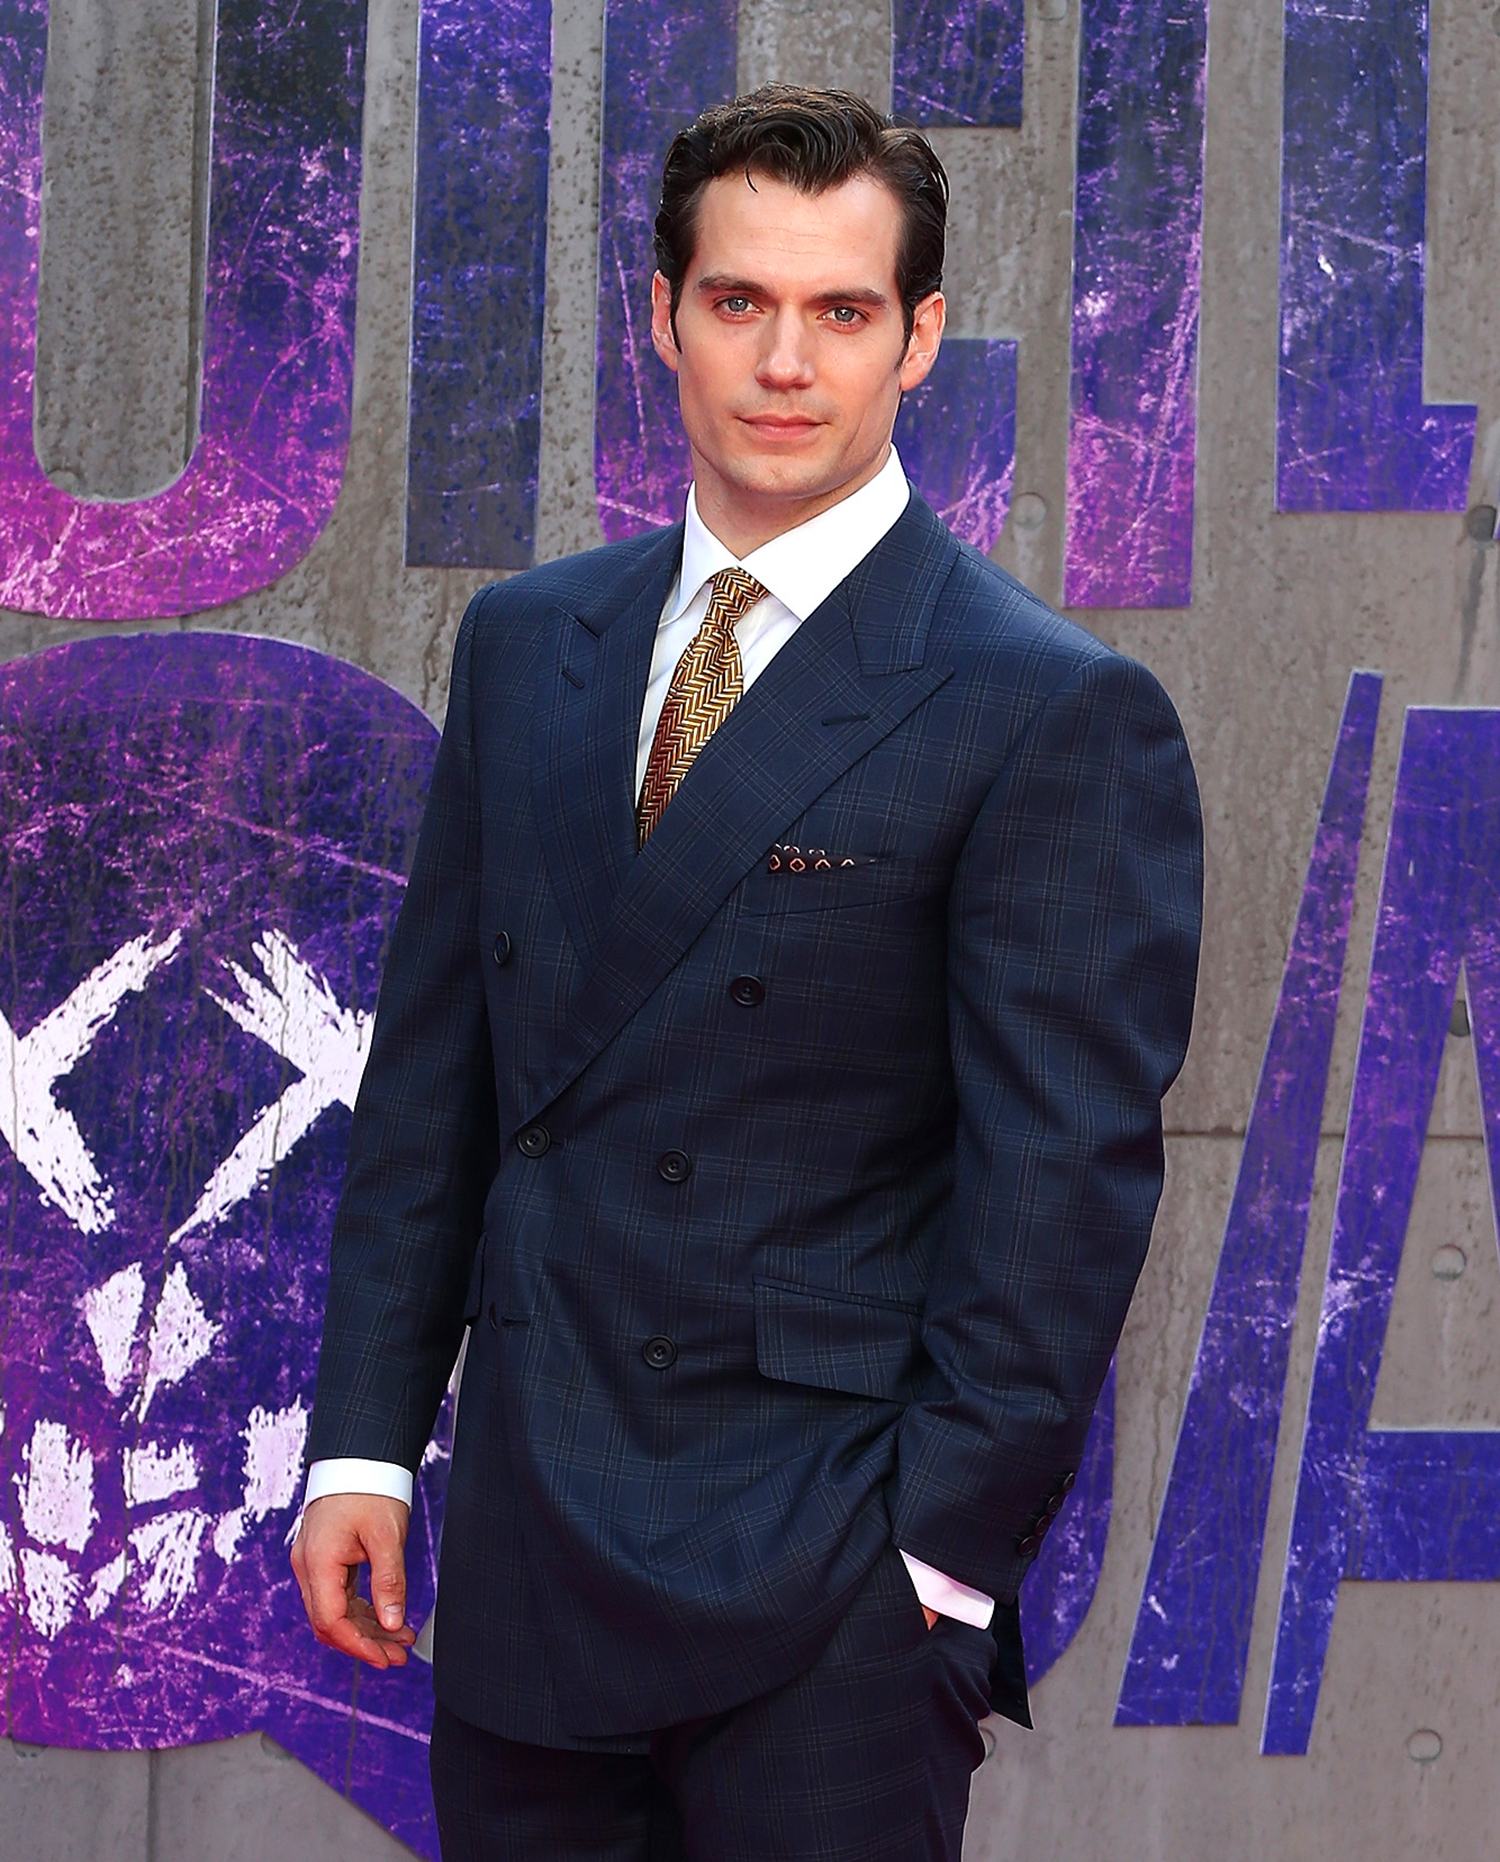 Death Hoax: Actor Henry Cavill Is NOT Dead